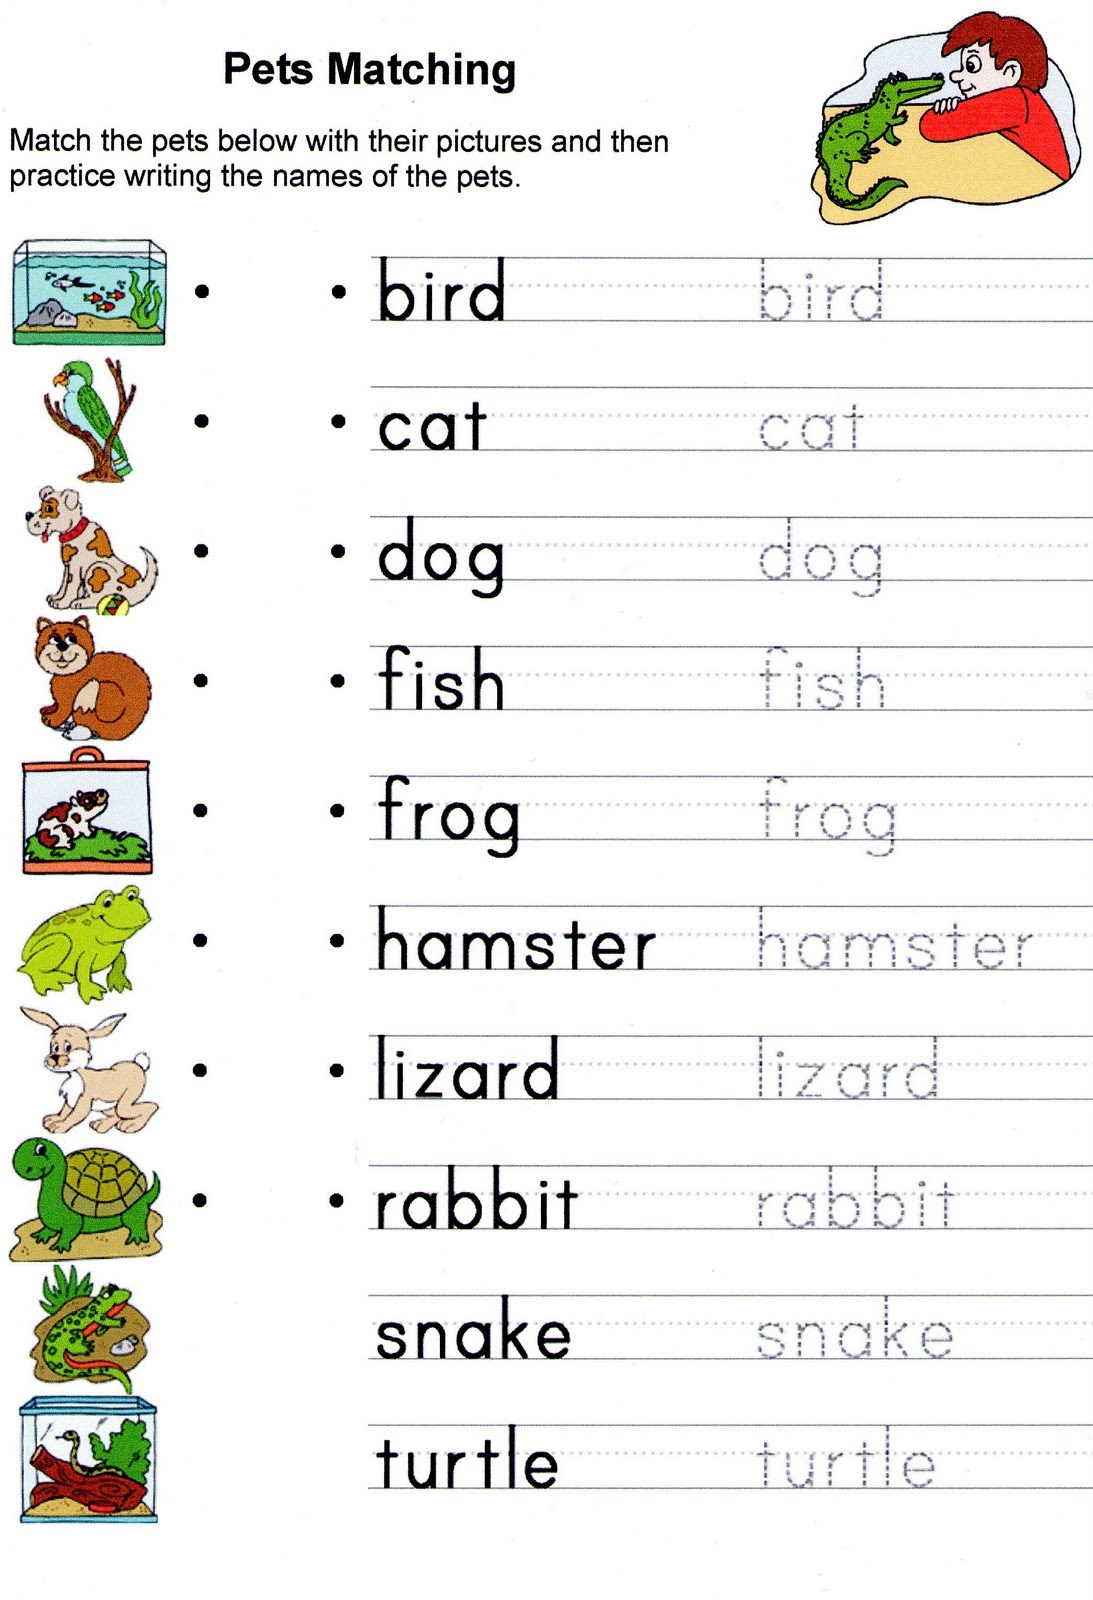 English Worksheets To Print : Printable english worksheets for kids learning